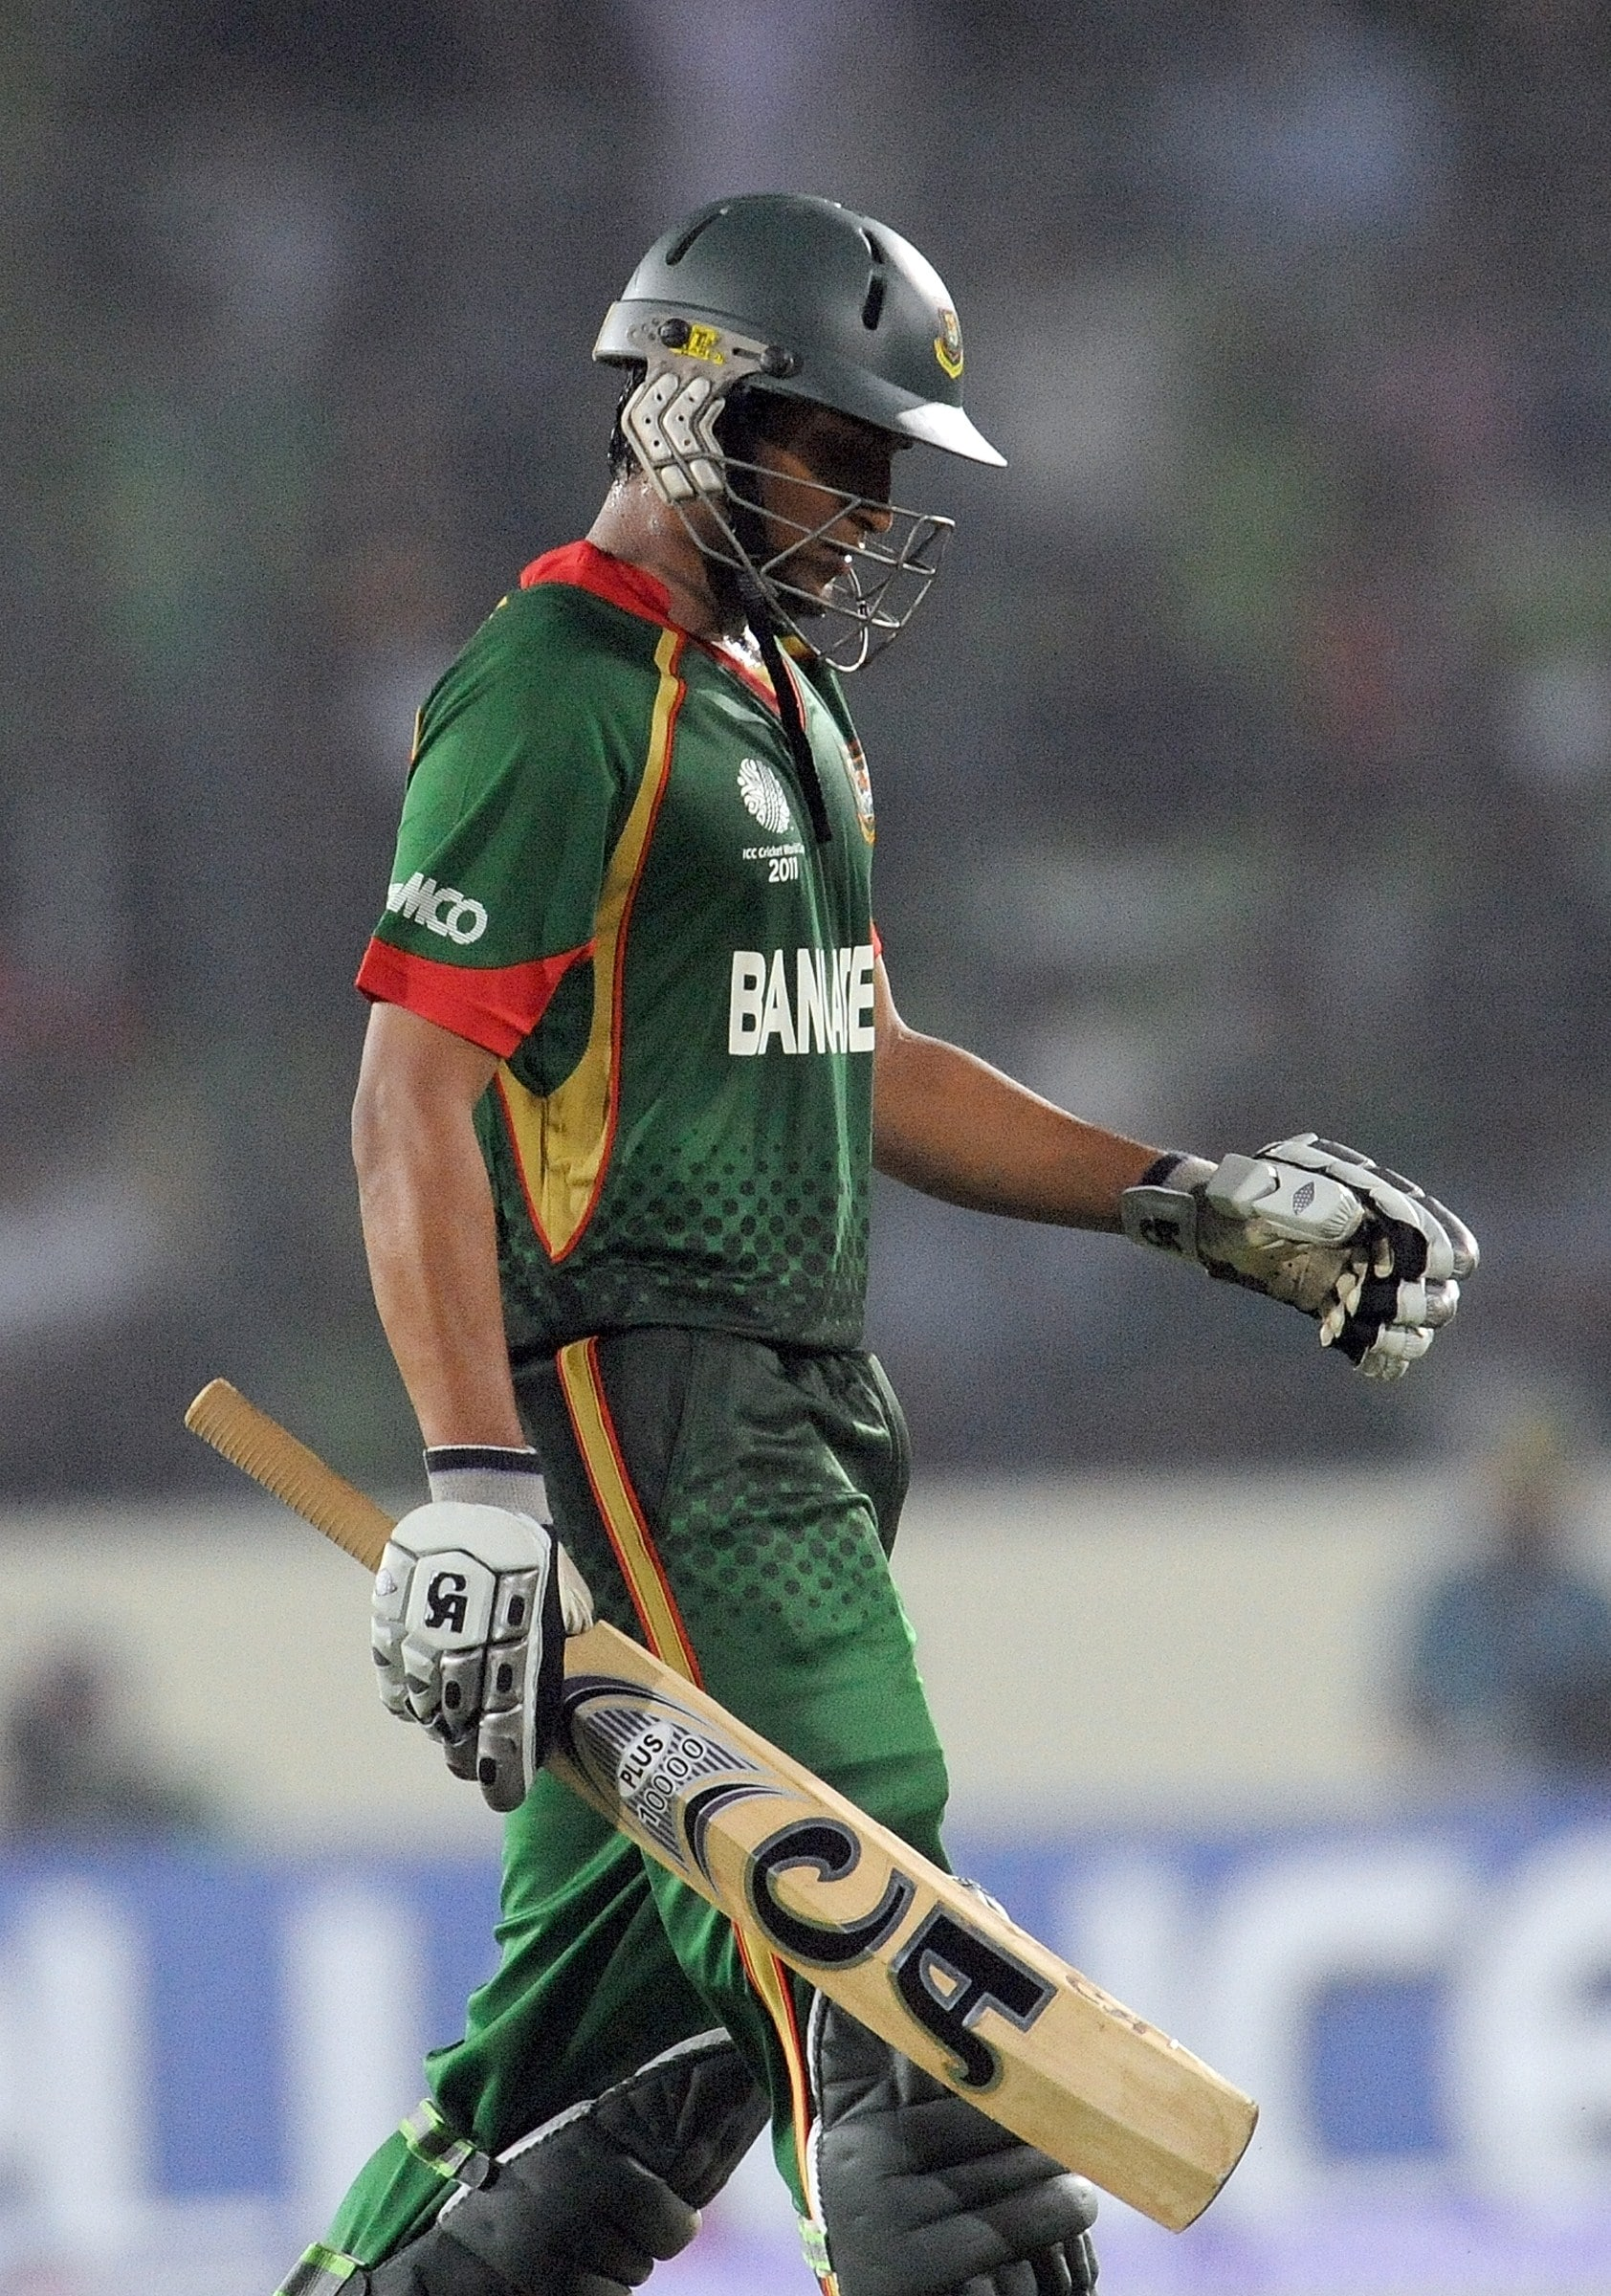 Shakib Al Hasan walks back to the pavillion after his dismissal during the first match in the World Cup tournament between Bangladesh and India at the Sher-e Bangla National Stadium in Dhaka. (AFP Photo)